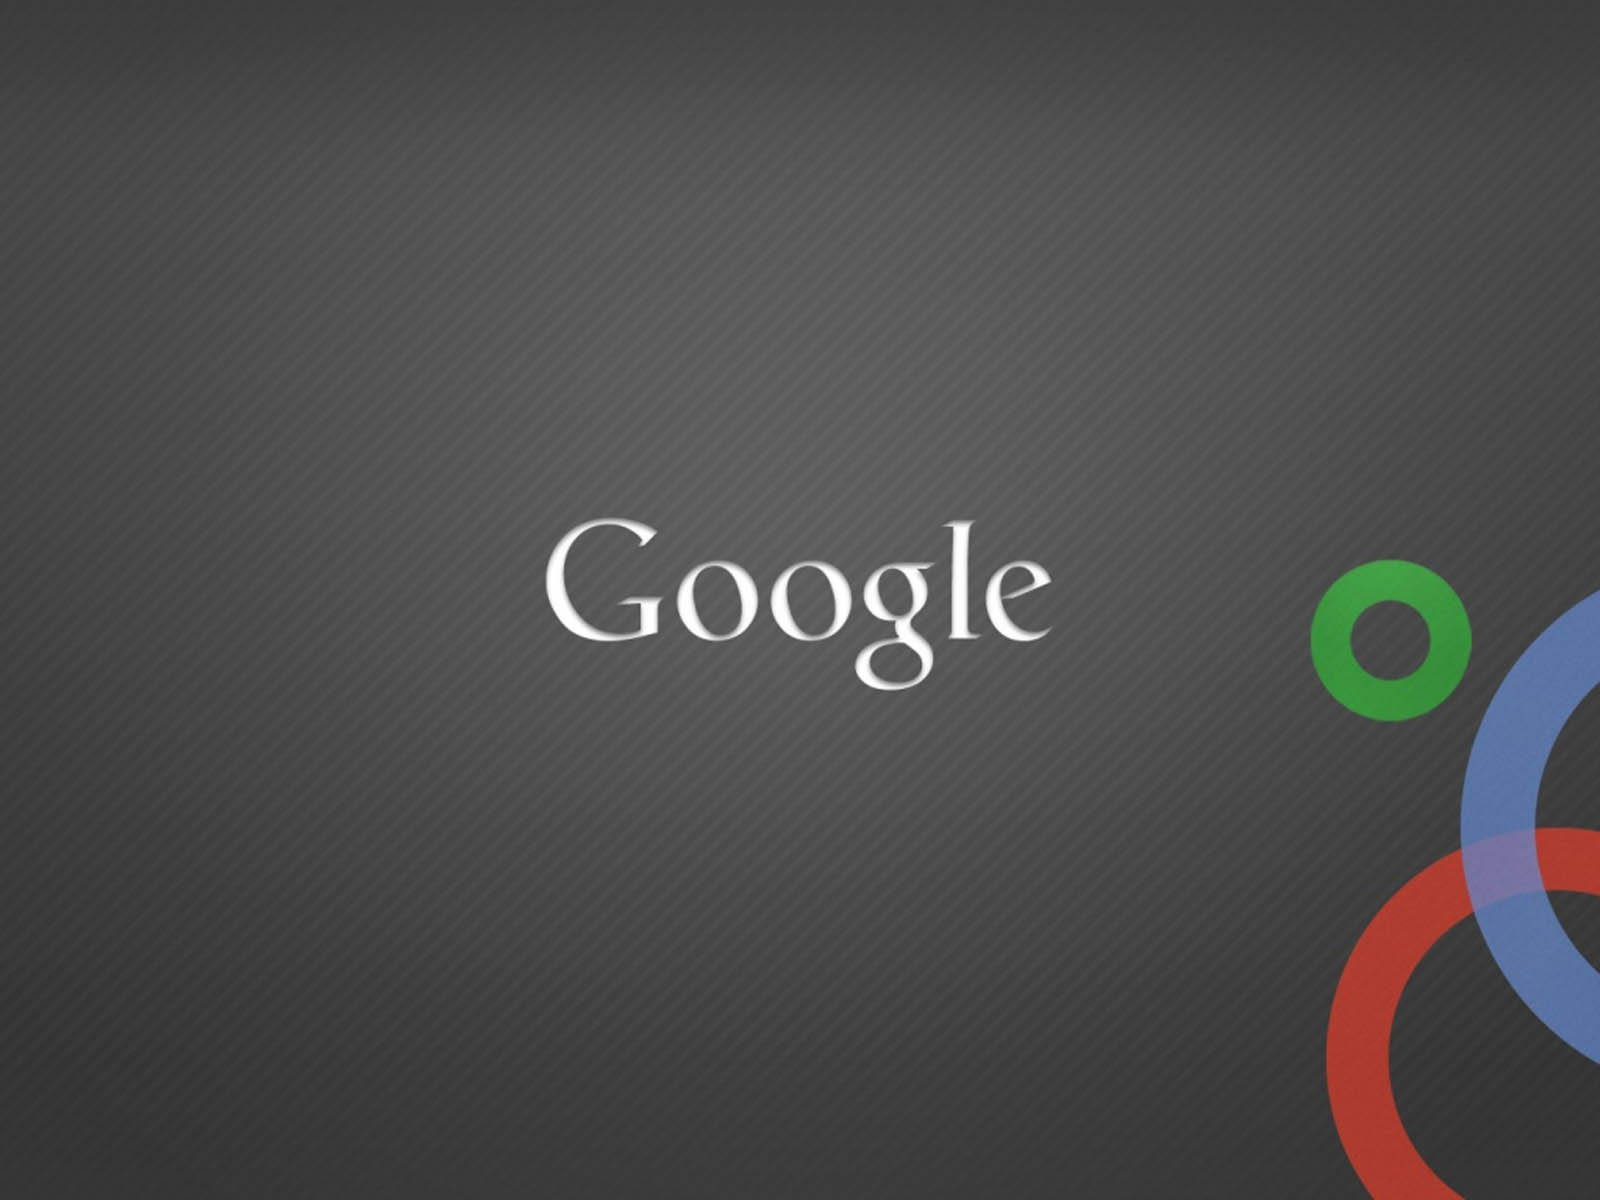 Google Desktop Wallpaper HD